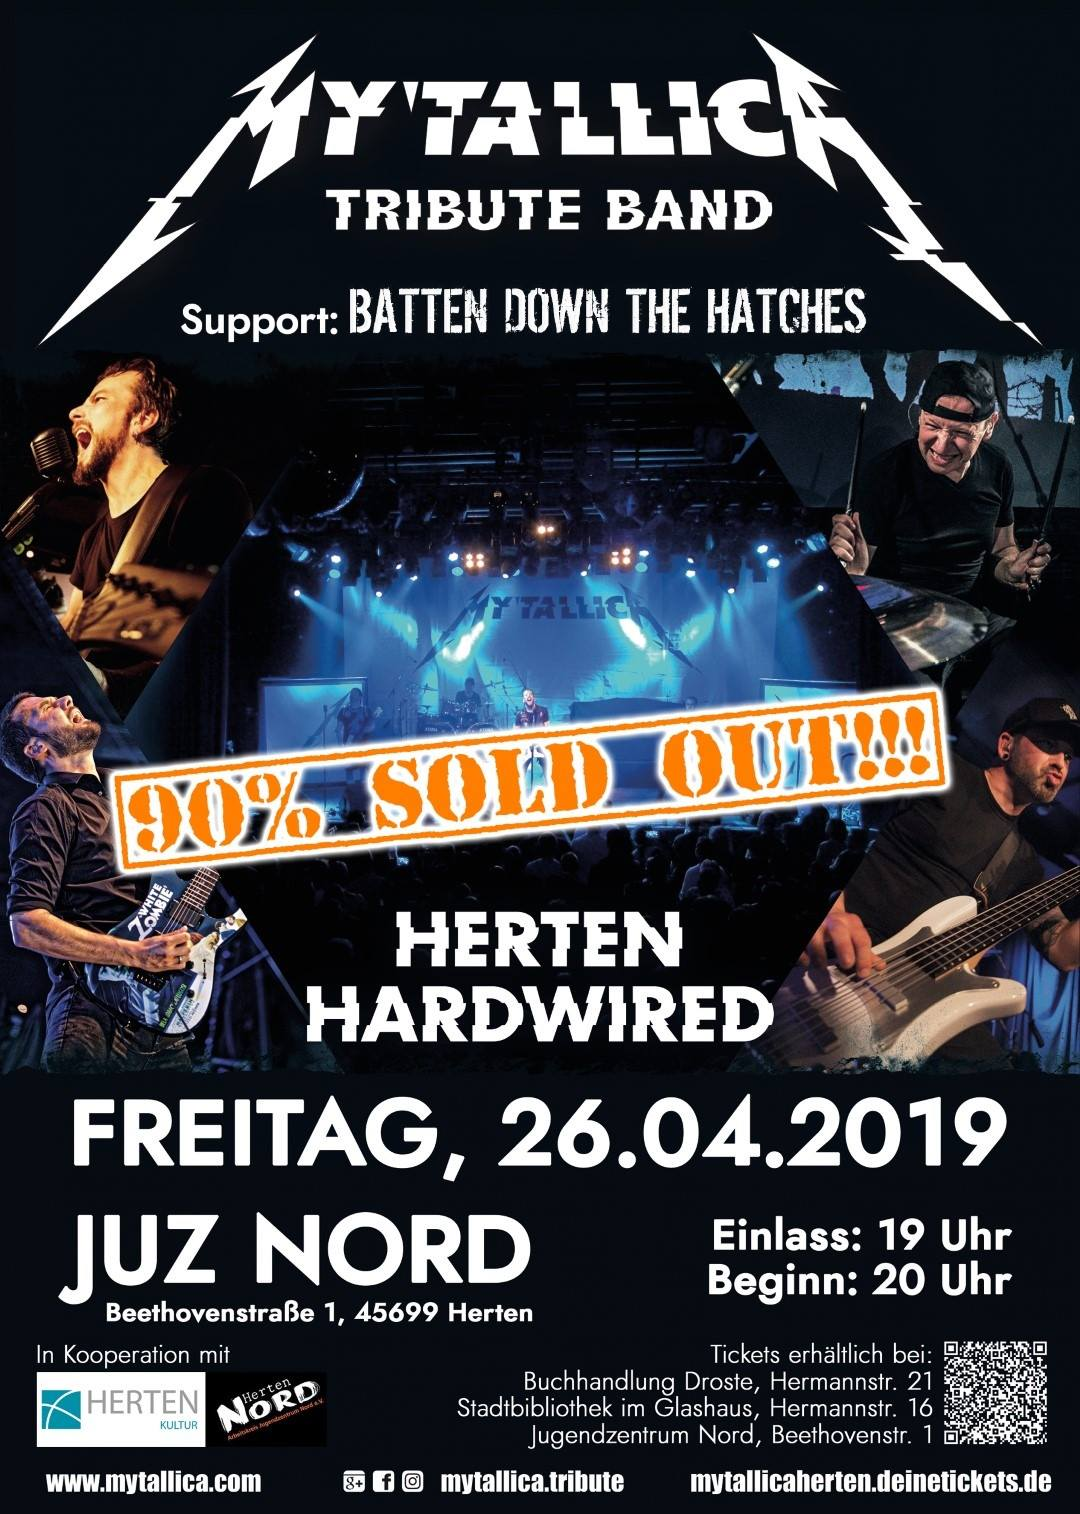 metallica-coverband-mytallica-herten-hardwired-2019-sold-out